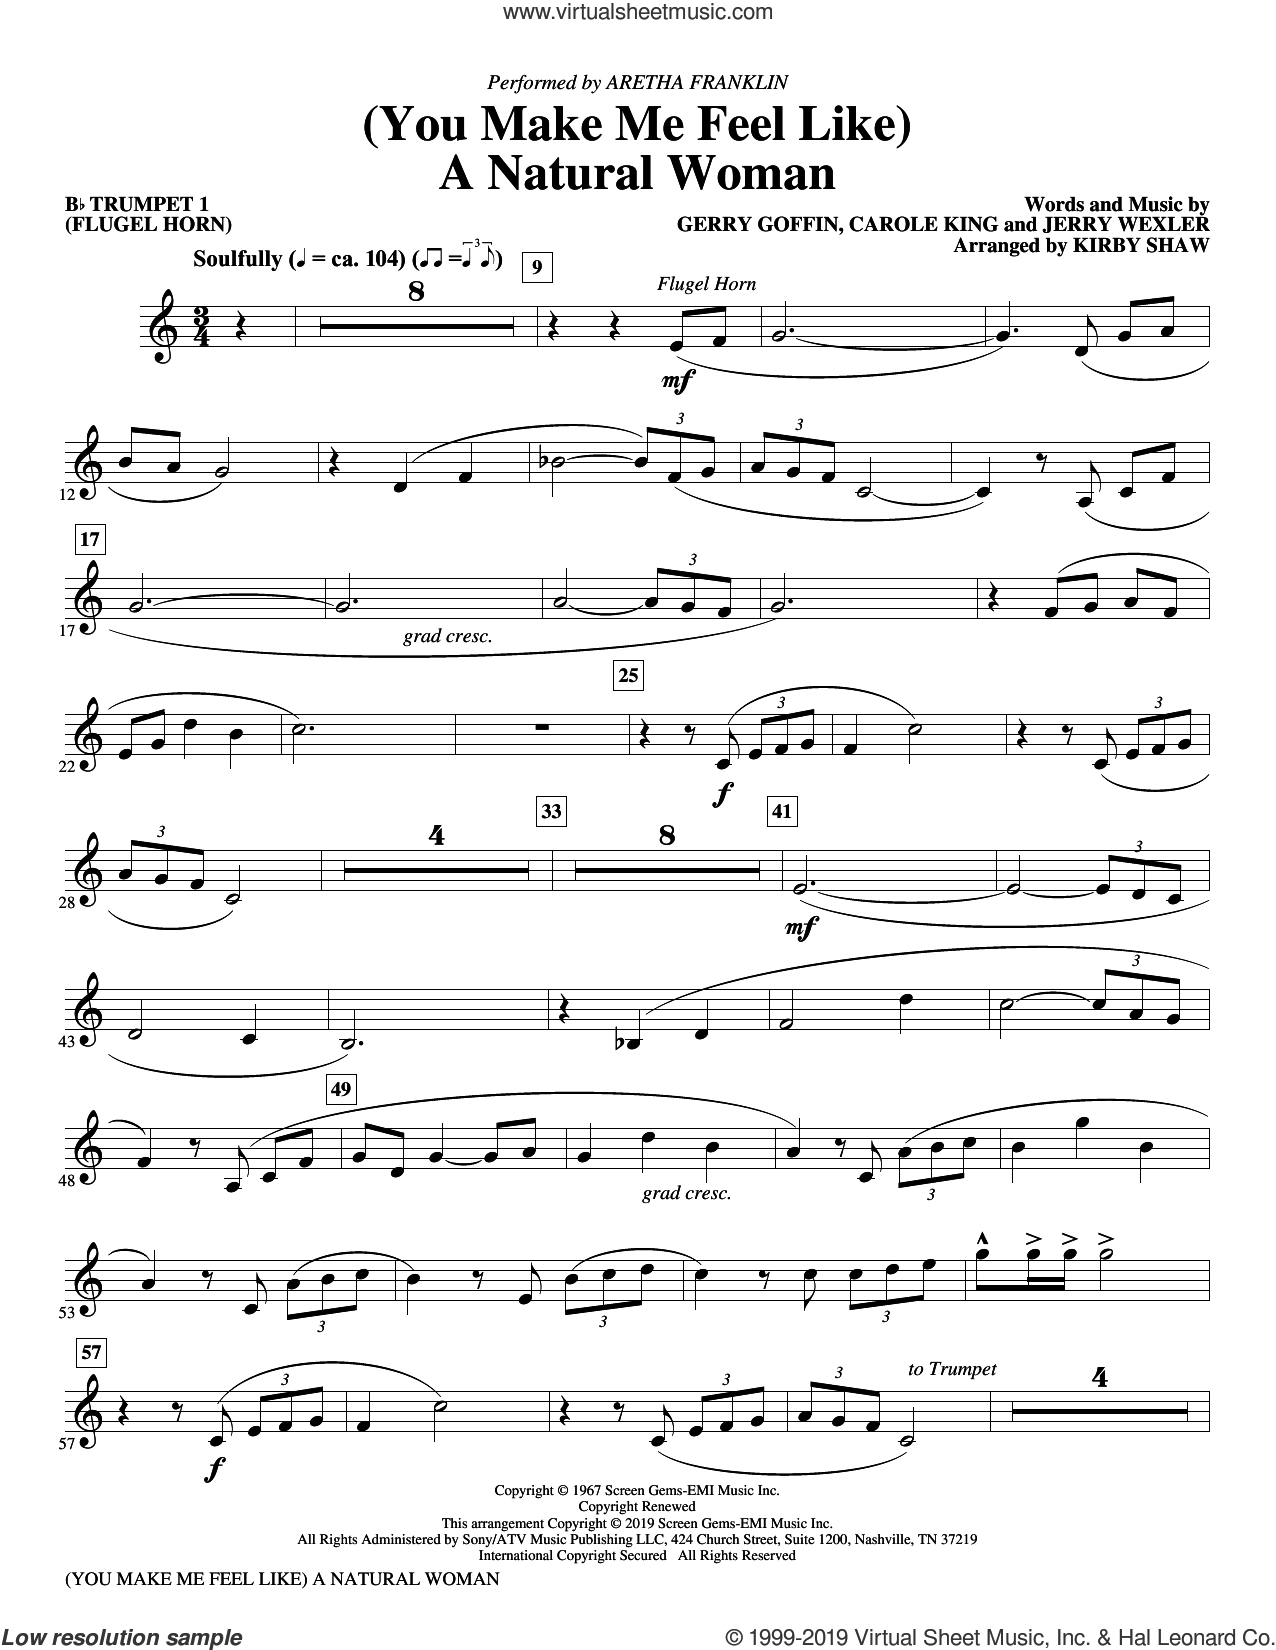 (You Make Me Feel Like) A Natural Woman (complete set of parts) sheet music for orchestra/band by Carole King, Aretha Franklin, Celine Dion, Gerry Goffin, Jerry Wexler and Mary J. Blige, intermediate skill level